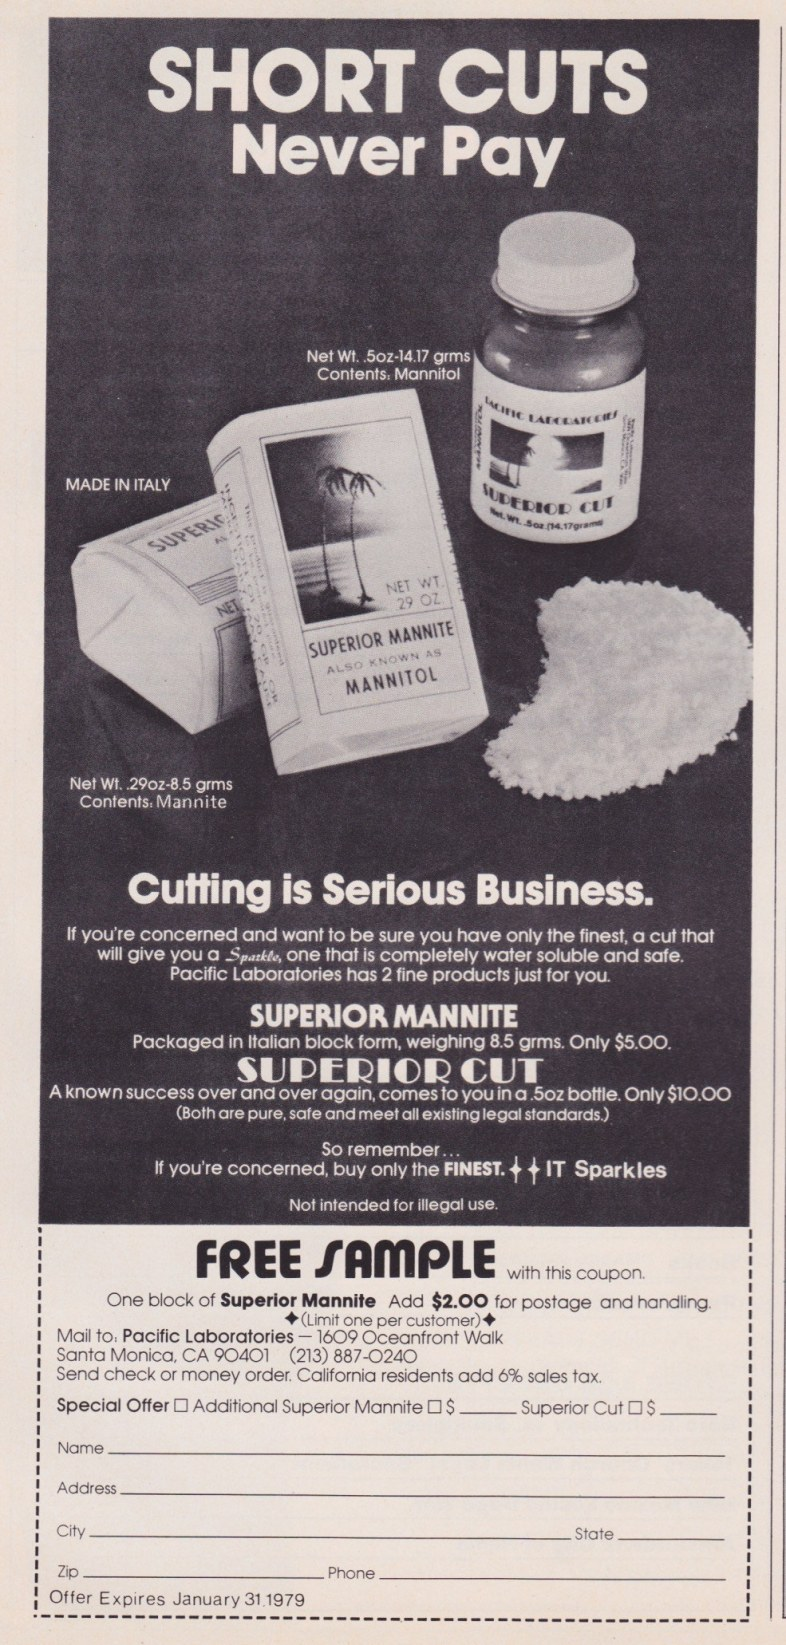 cocaine-ad-cutting-serious